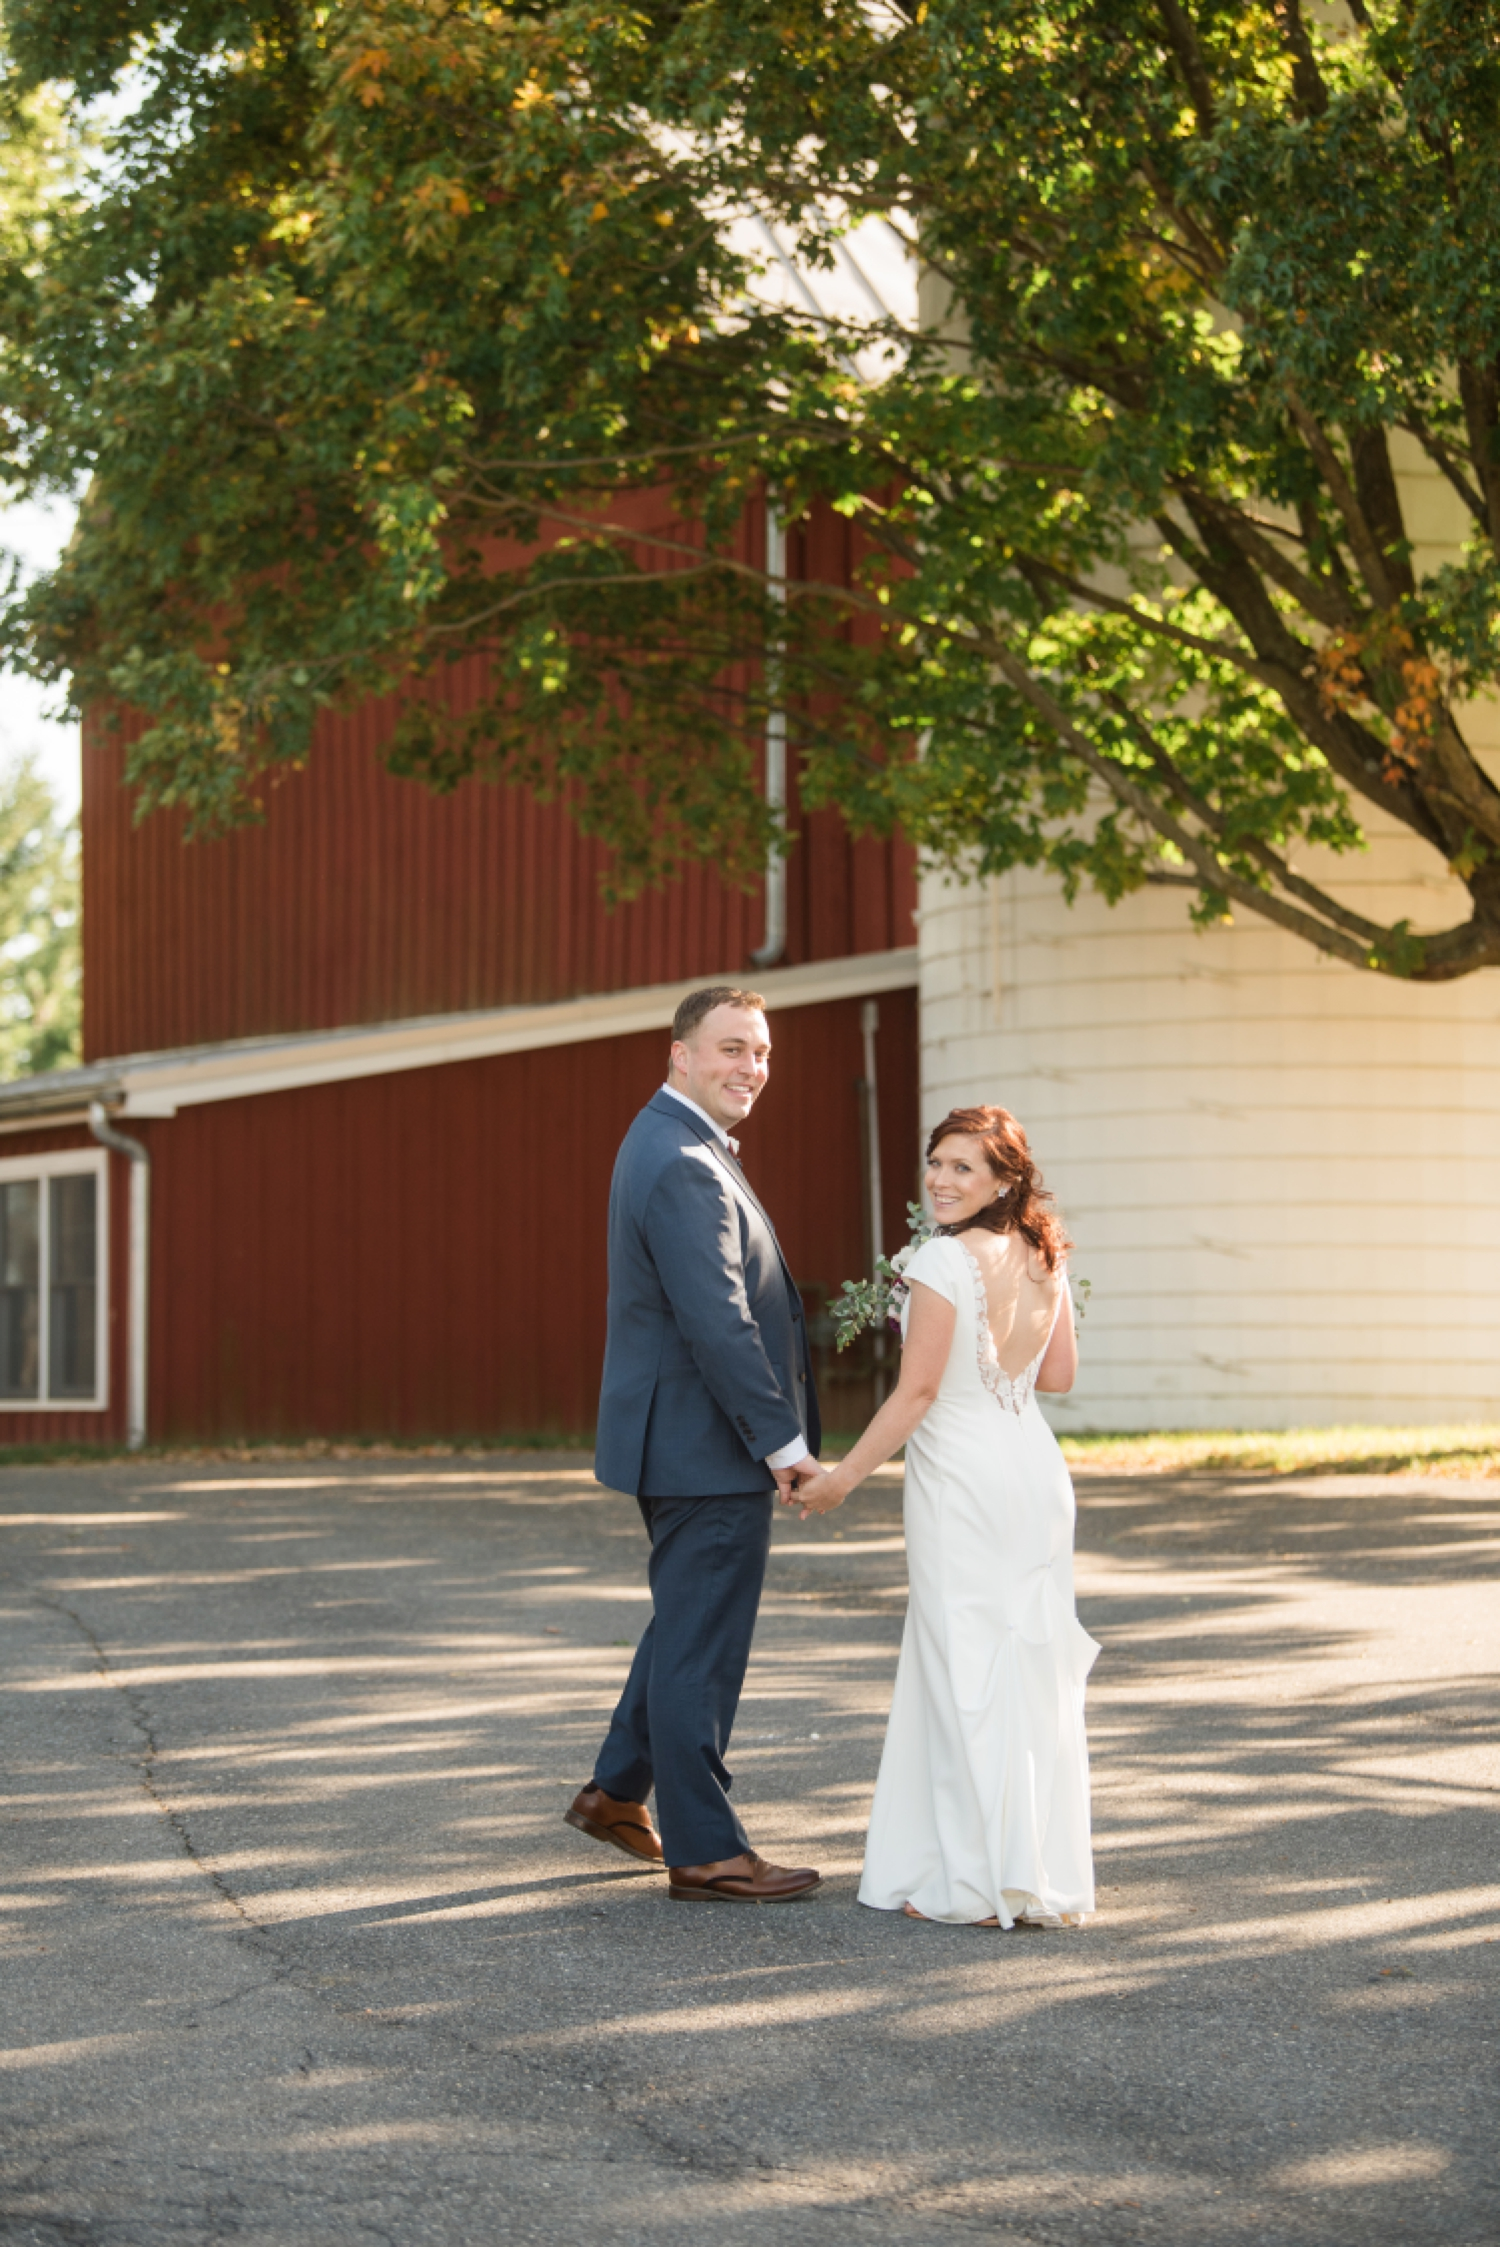 Tusculum Farm micro wedding with red barns